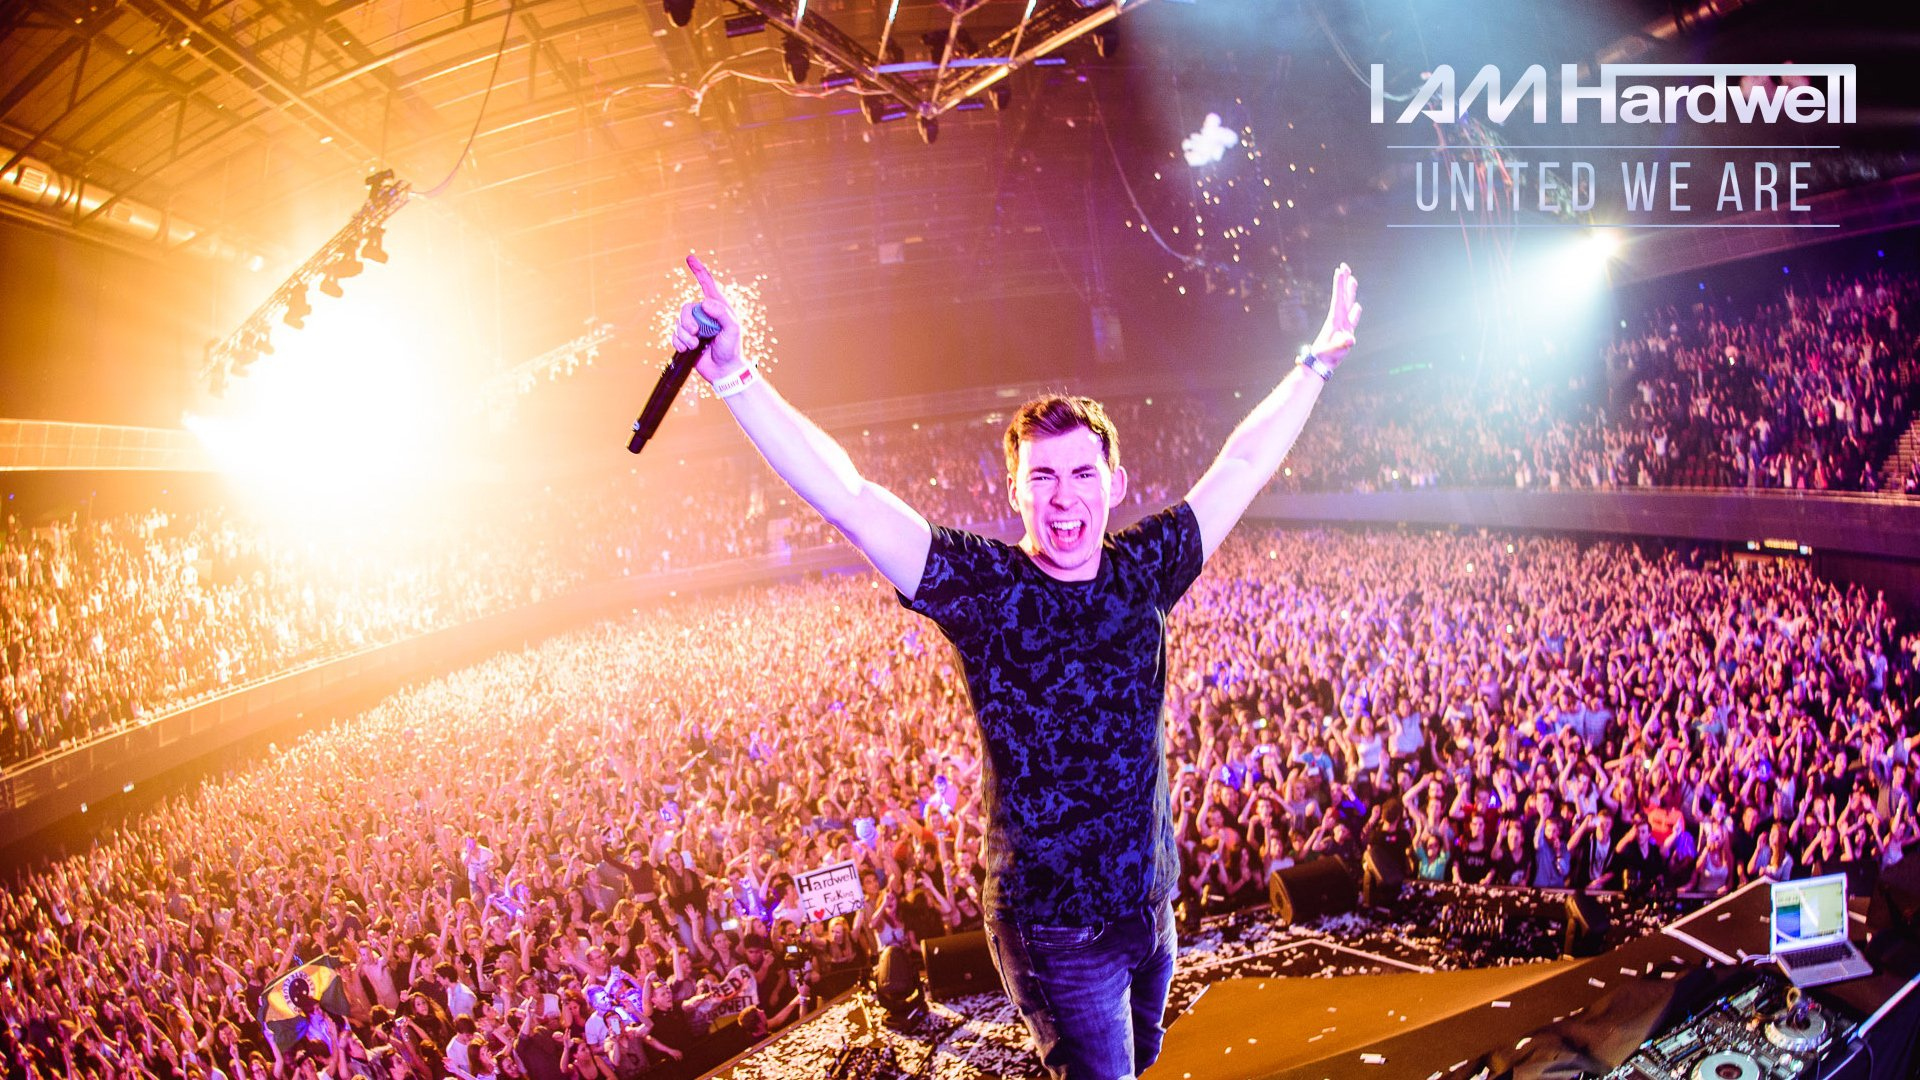 hardwell live wallpaper - photo #25